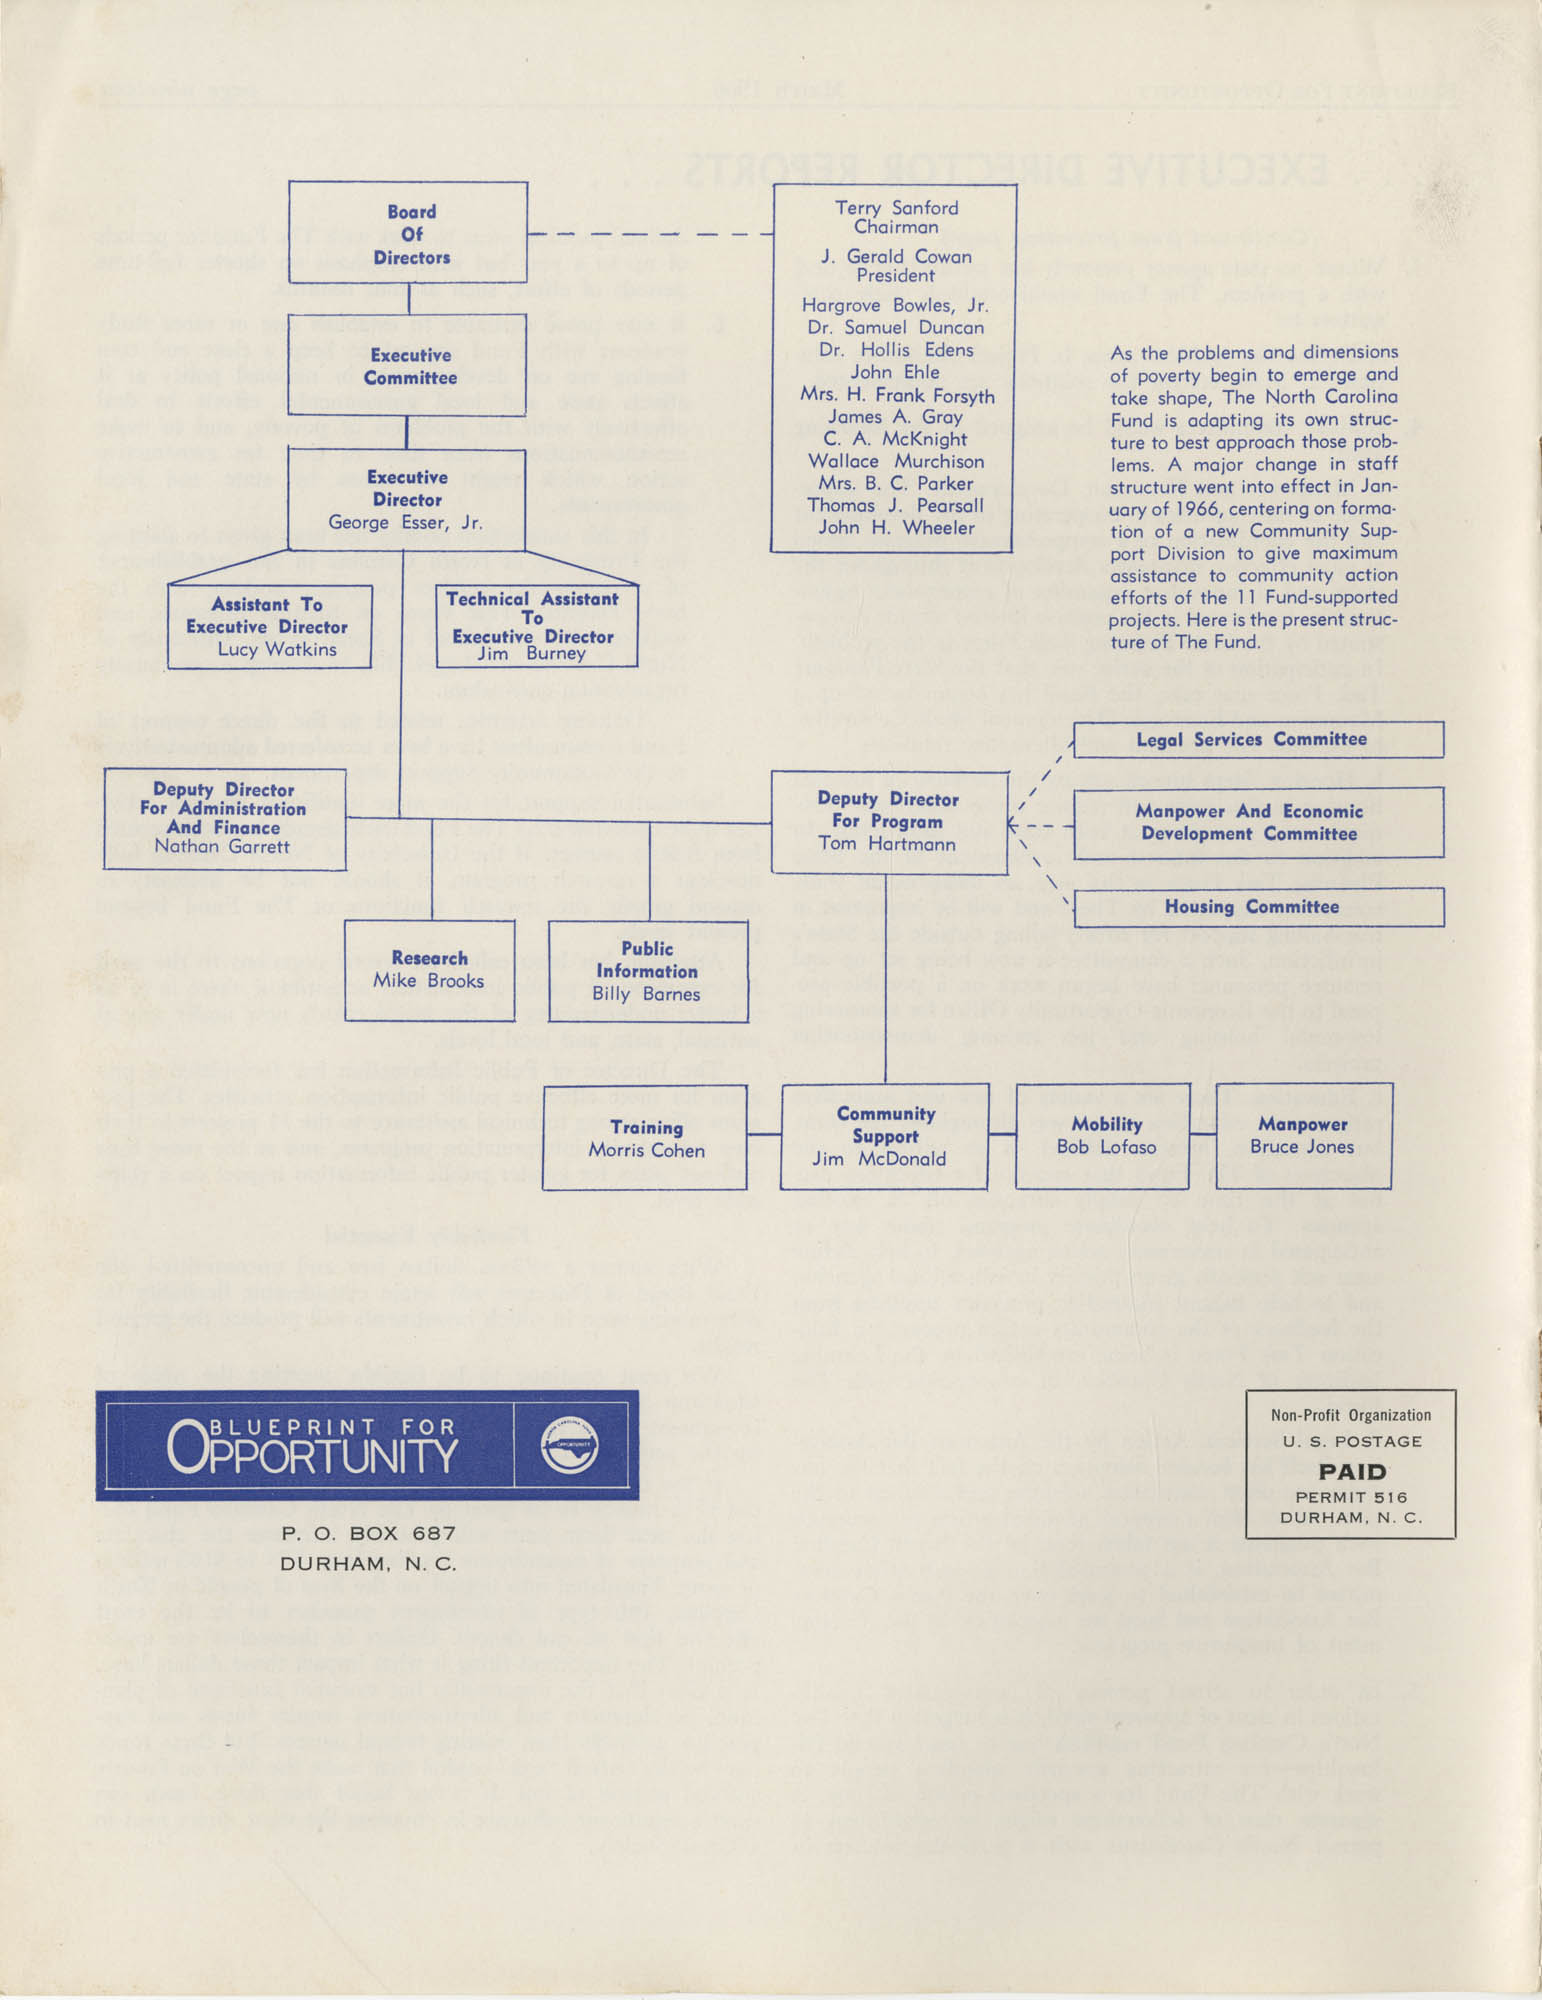 Blueprint for Opportunity, Vol. 2, No. 1, Back Cover